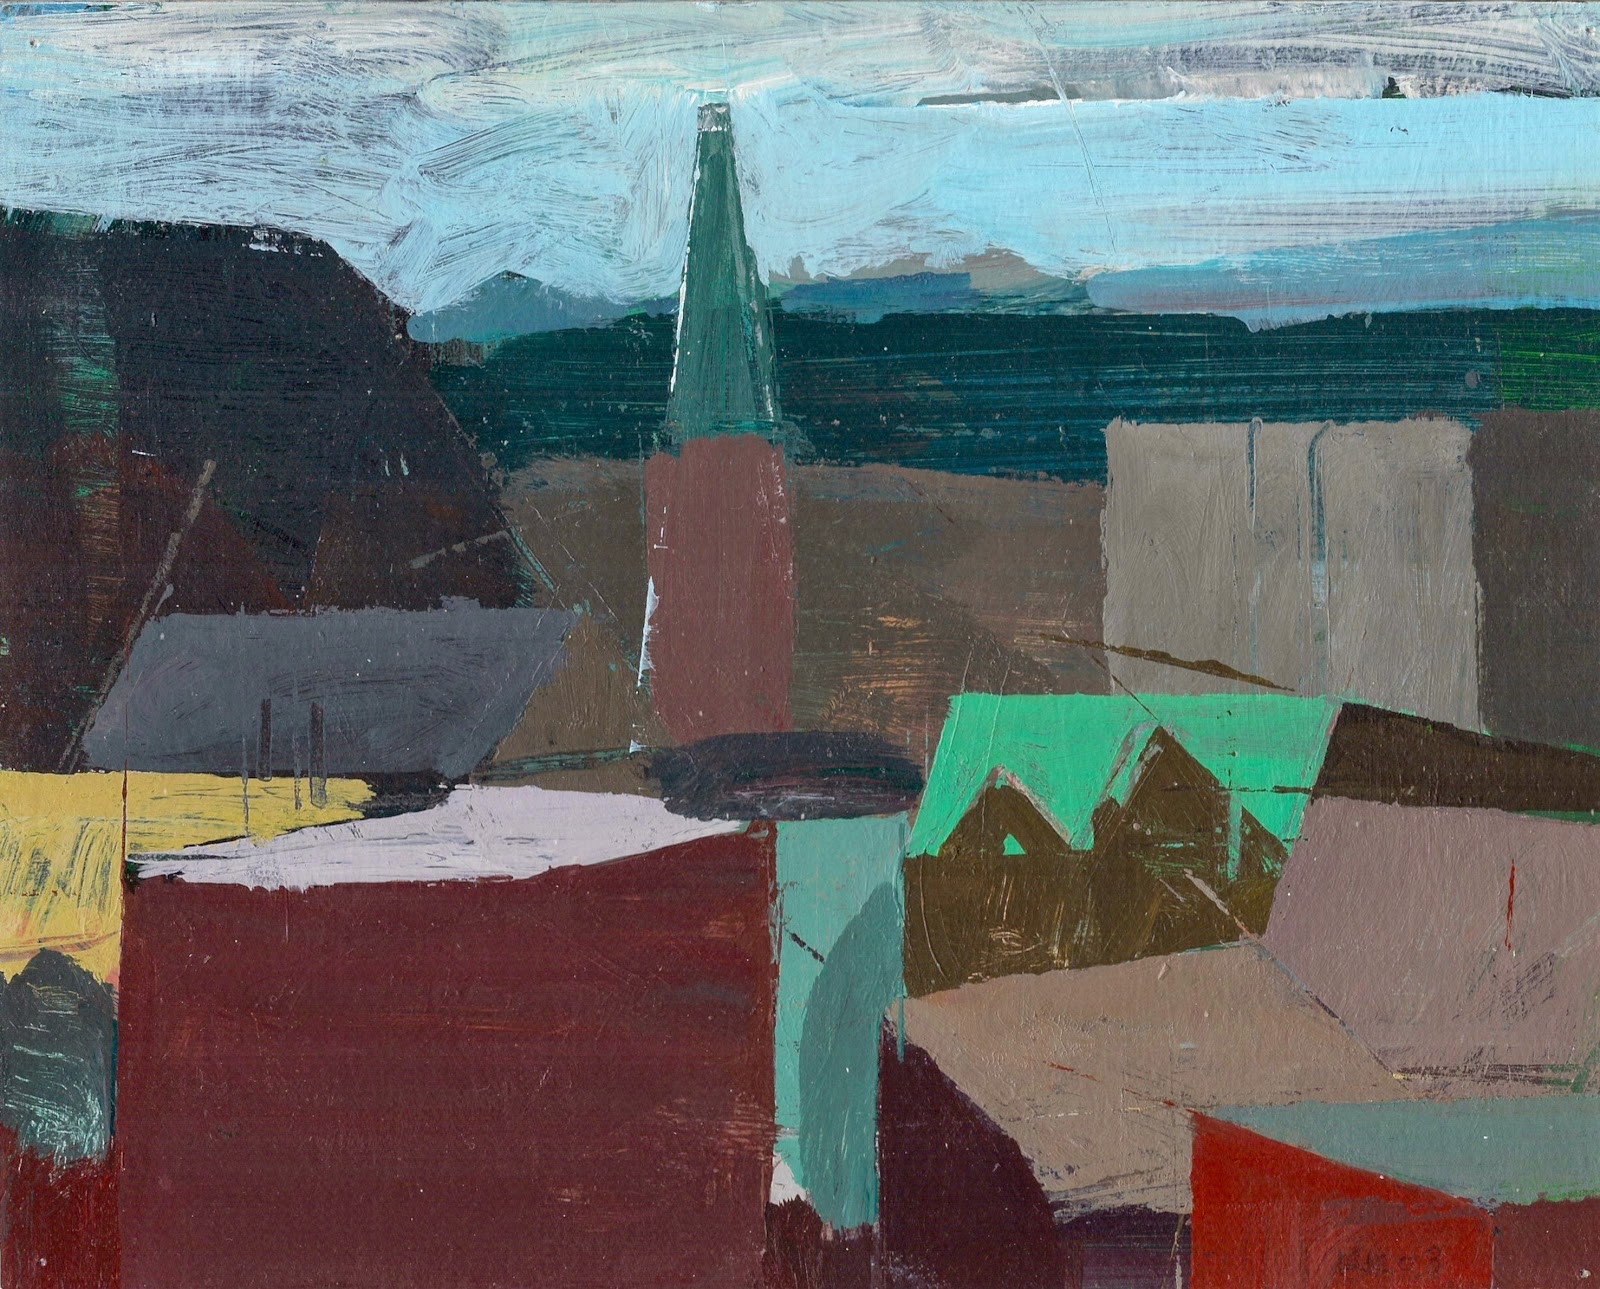 Line Color Form : Painting: powers of observation: ken kewley u2014 notes on color and